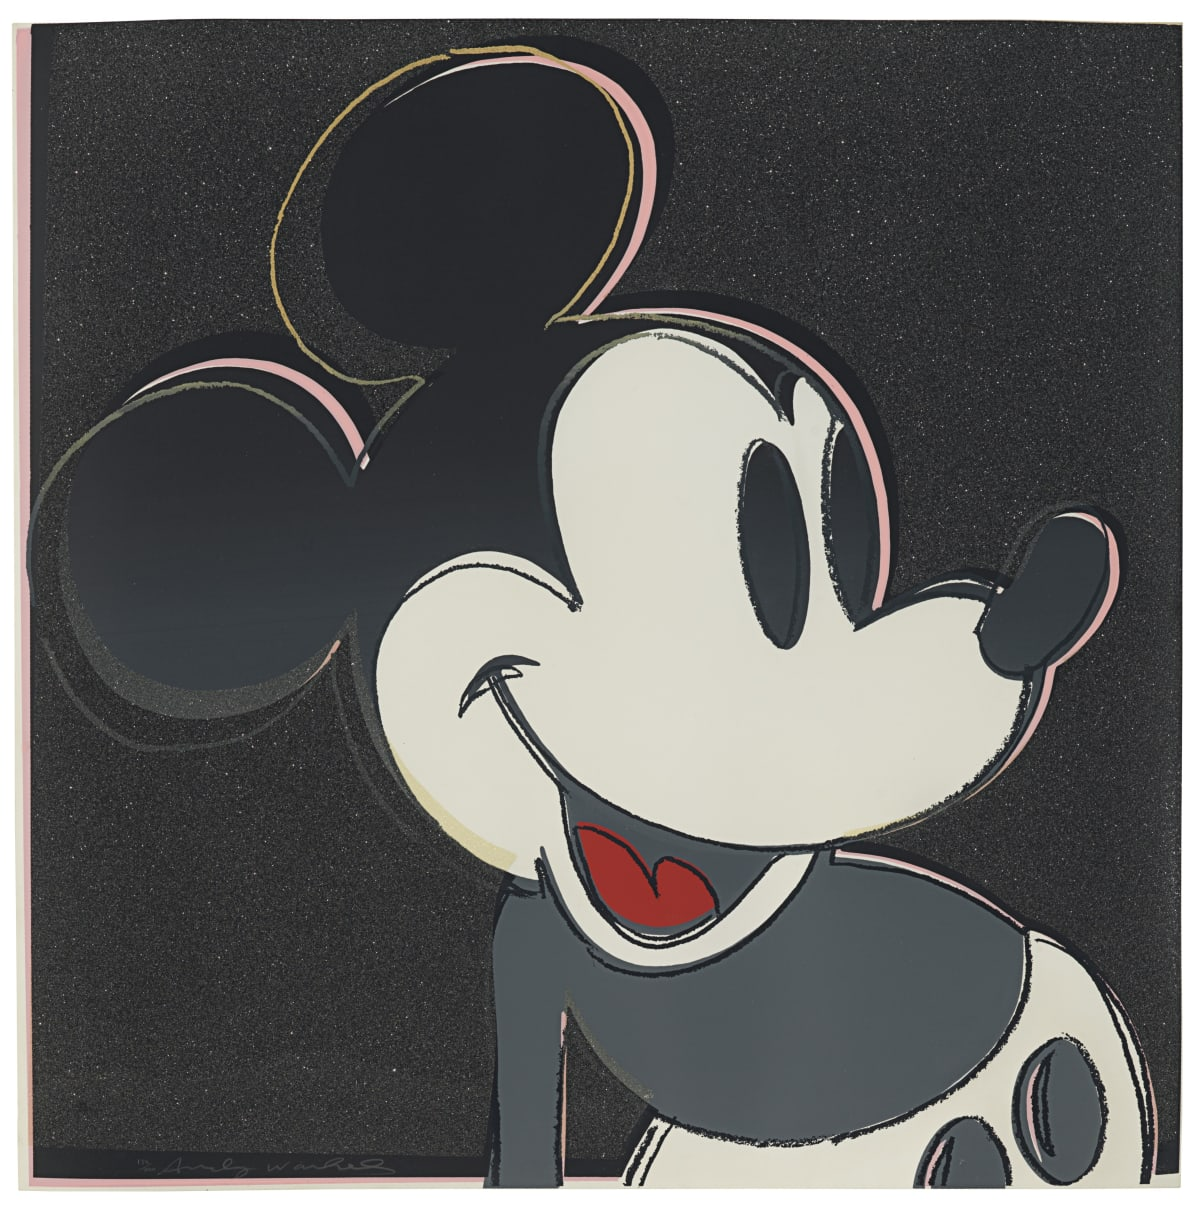 Andy Warhol, Mickey Mouse, 1981 Screenprints on Lenox Museum Board 38 x 38 inches each Edition of 200